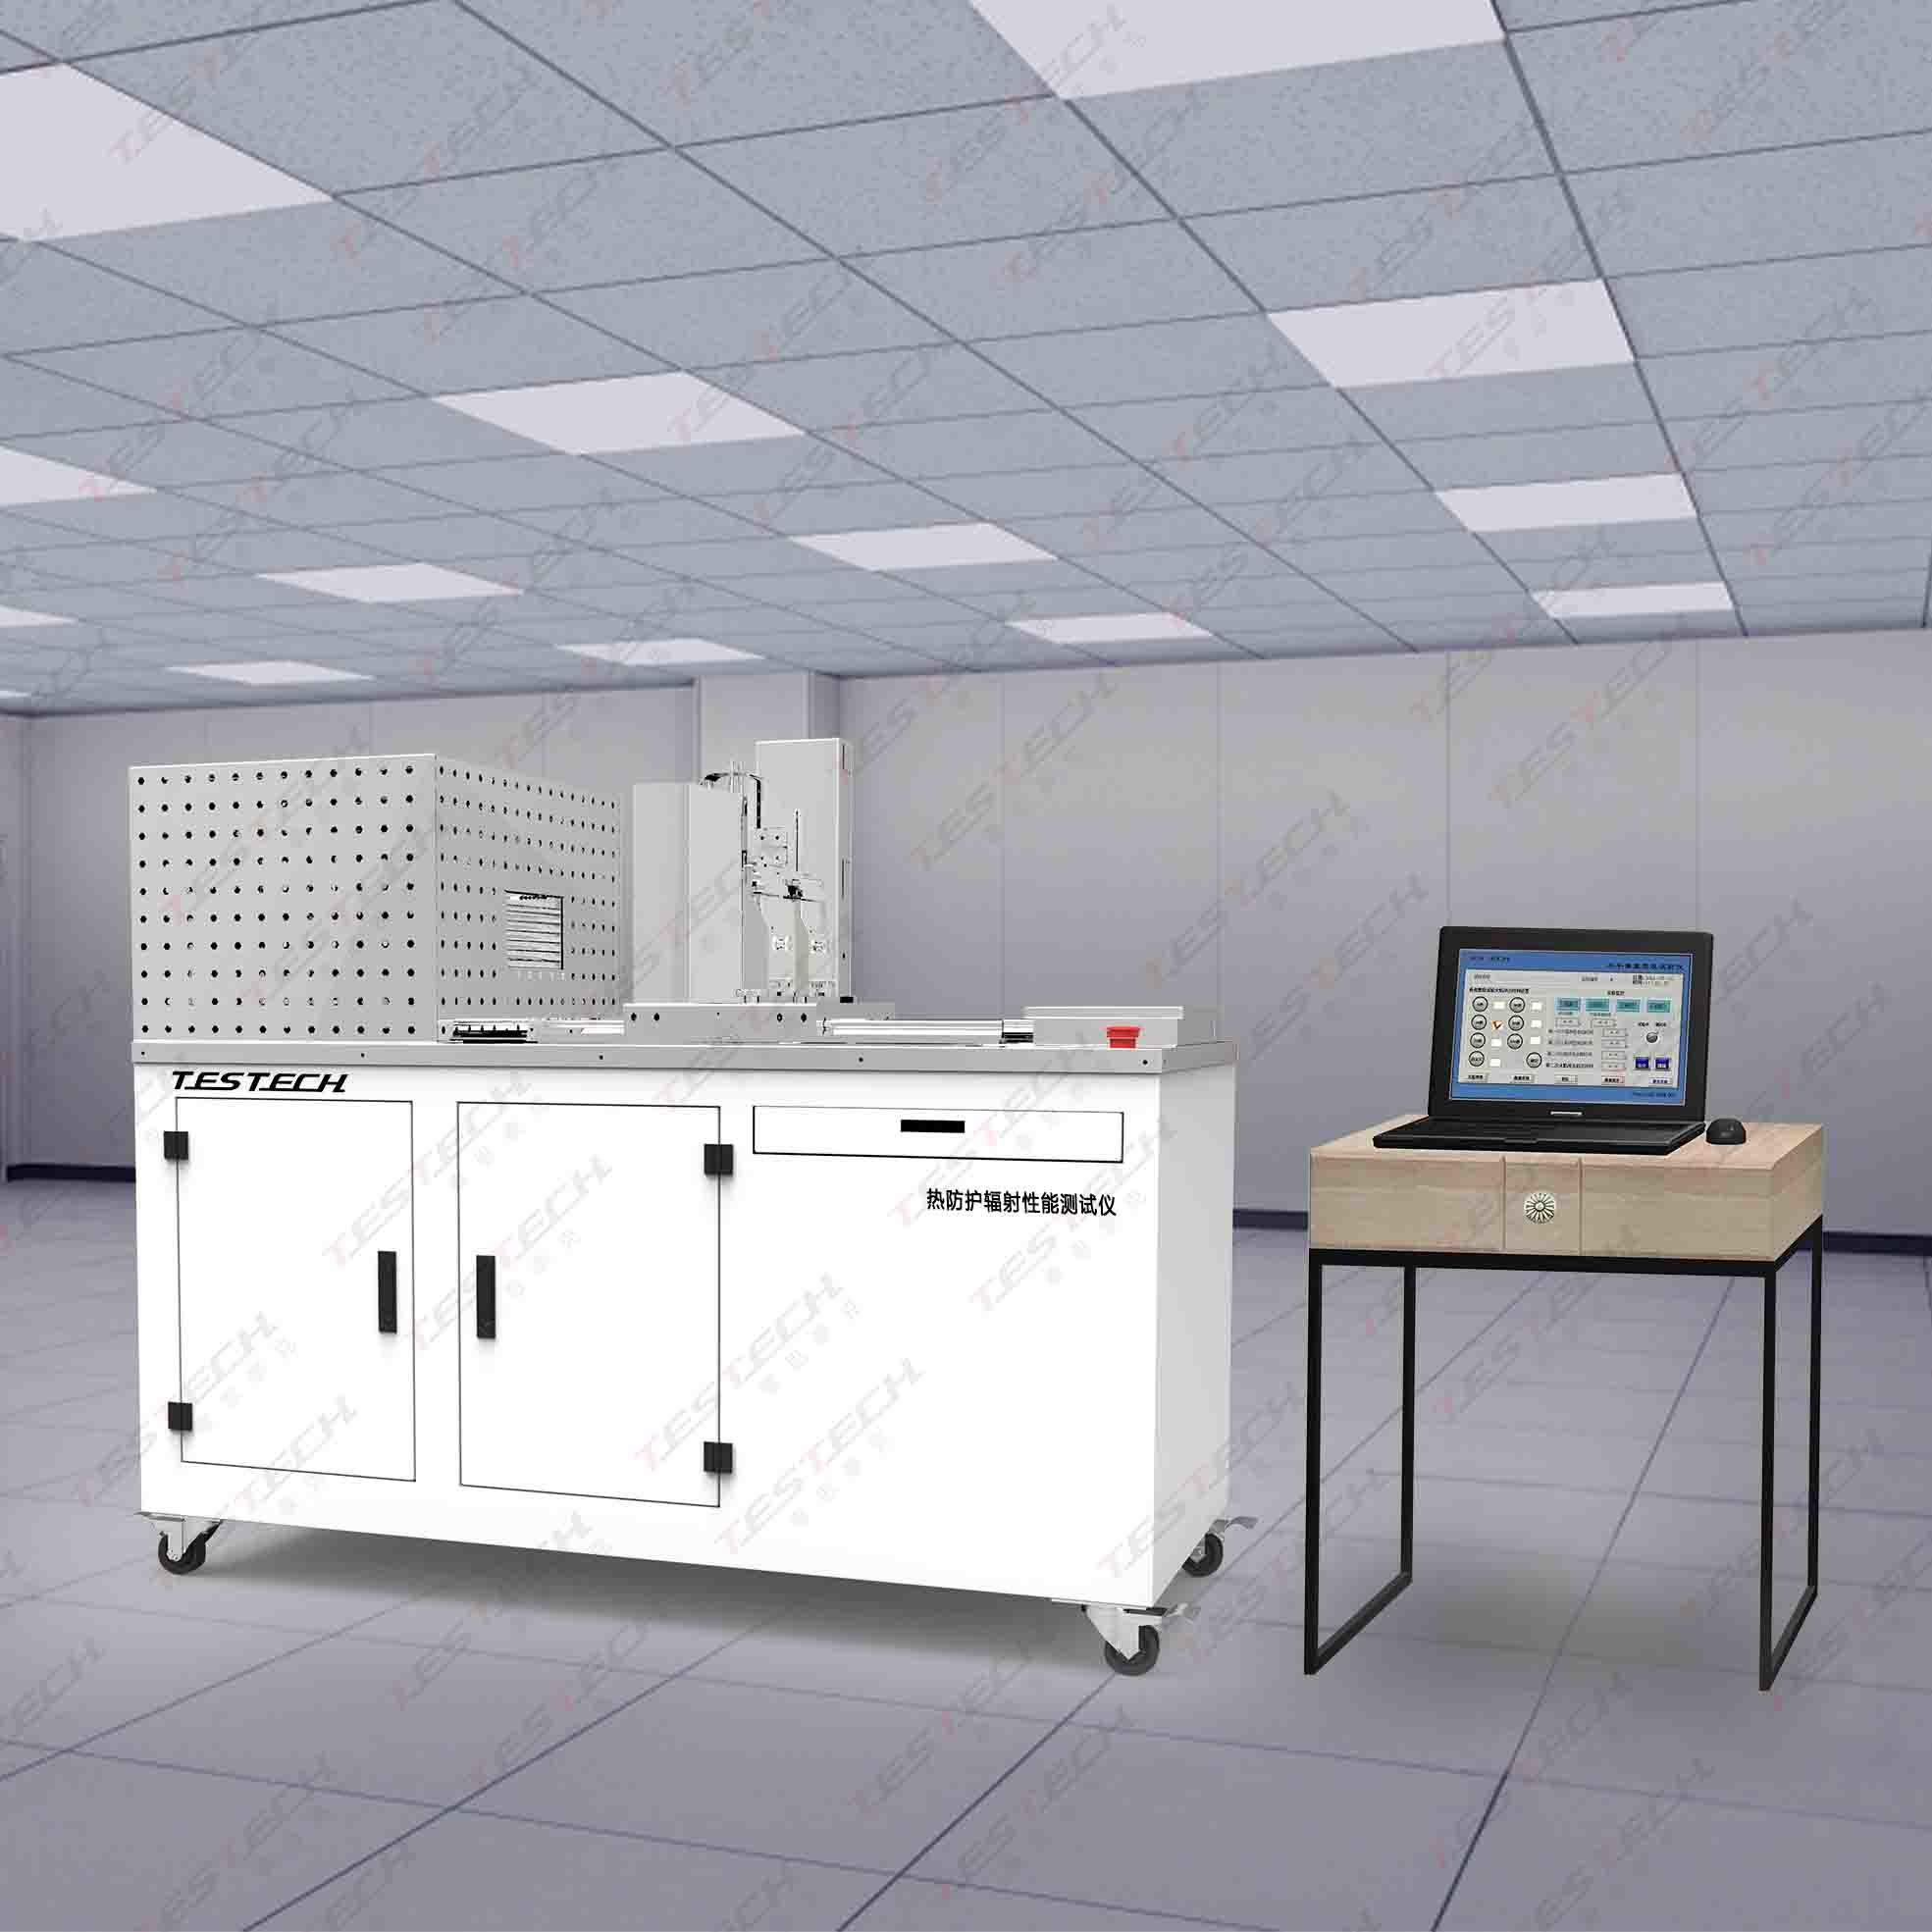 Thermal Protection (radiation) Performance Testing Machine, En 366 (FTech-ISO6942)